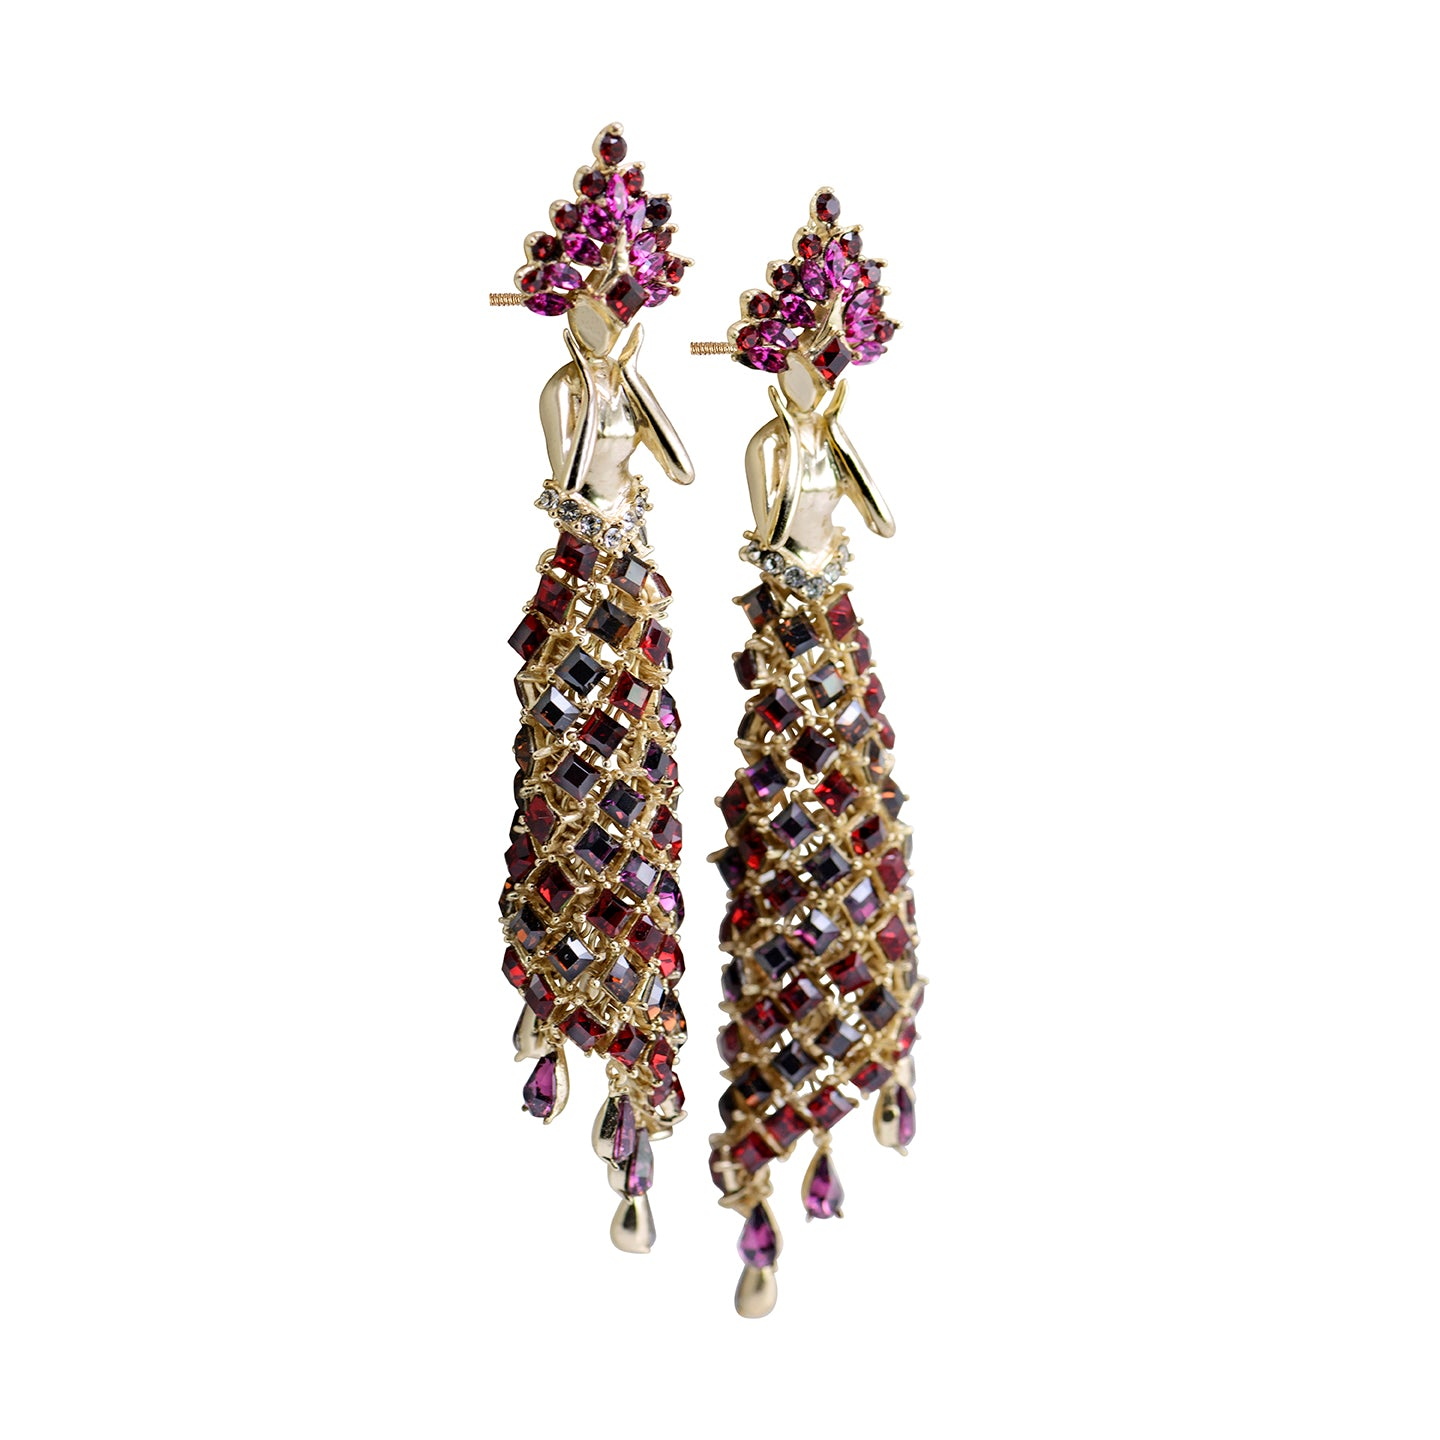 Feerie Earrings